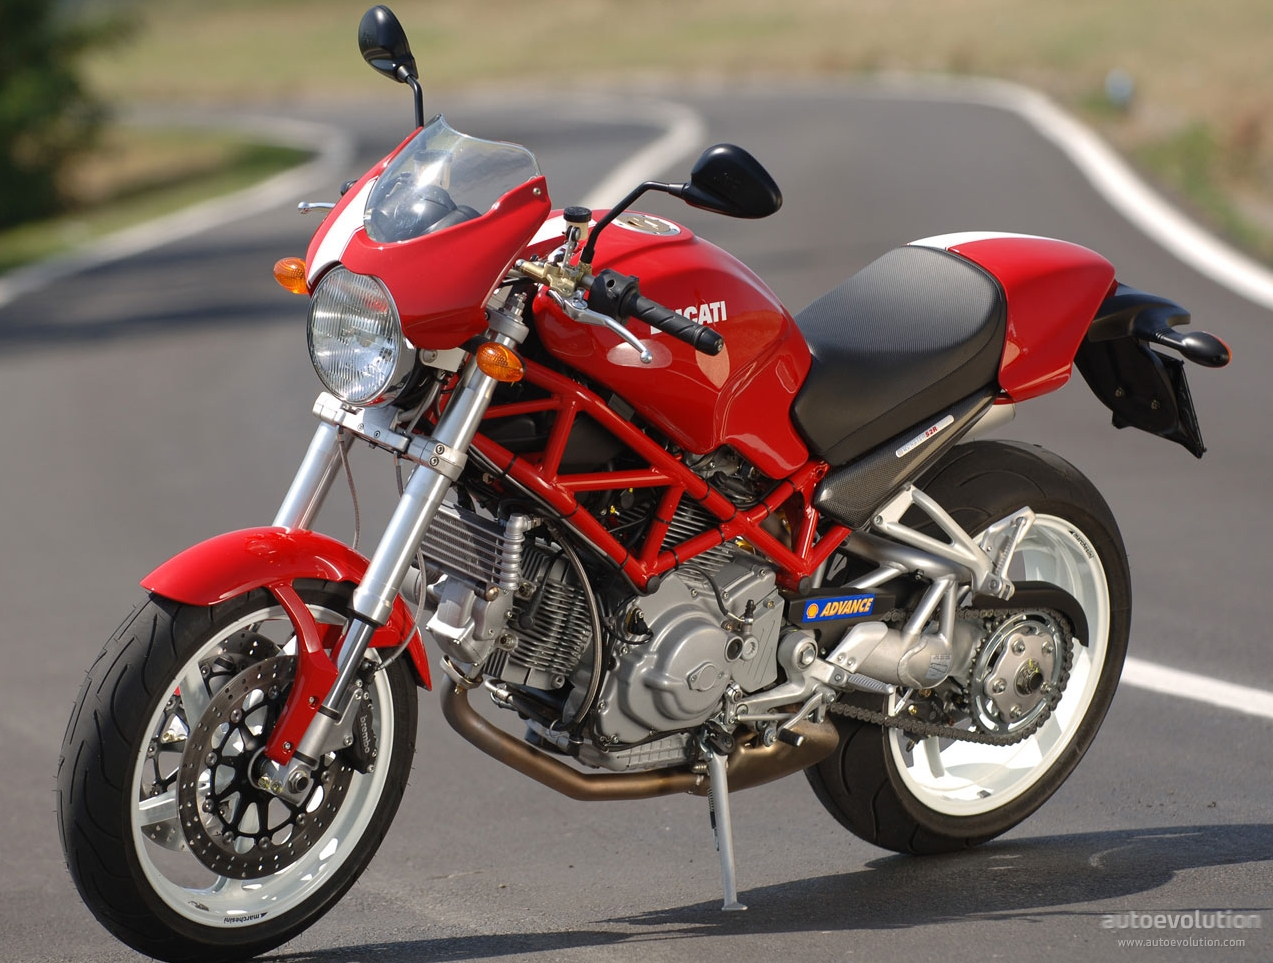 Ducati Hypermotard With Knobbies